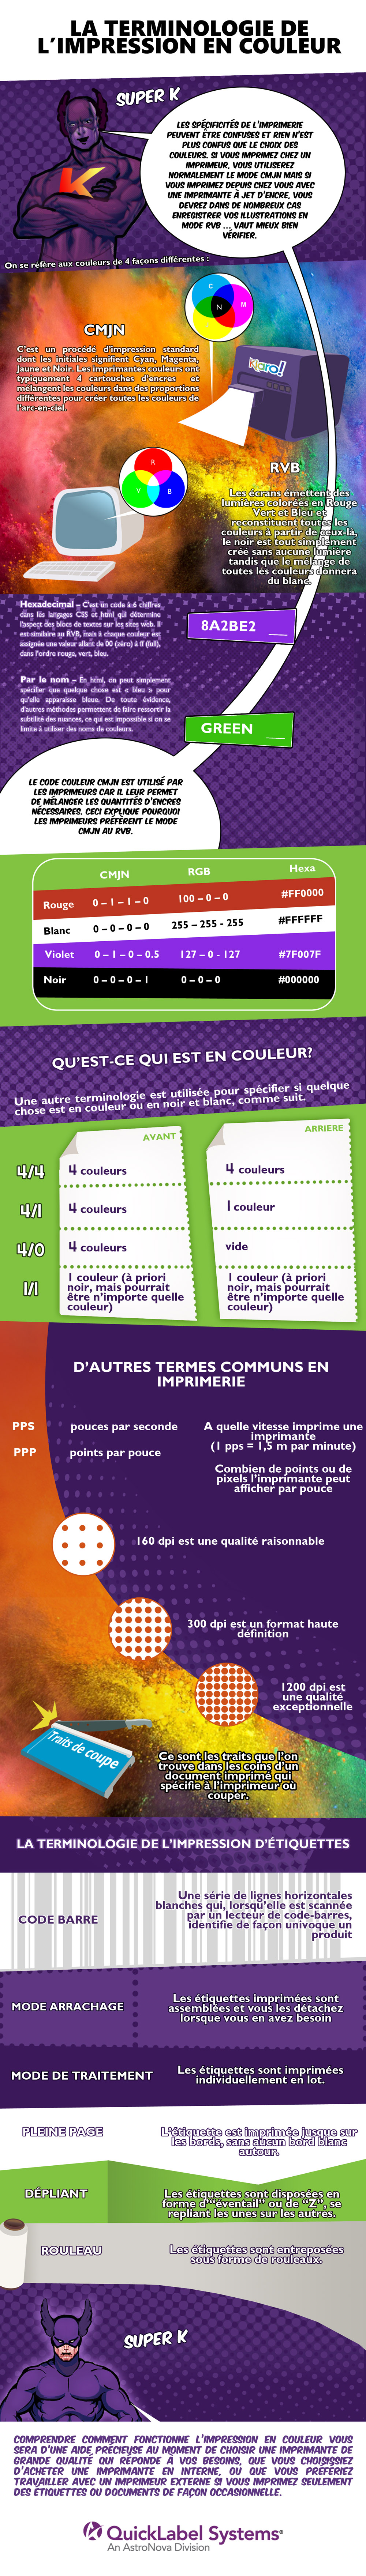 Infographic in French Printing Terminology for Social Media -